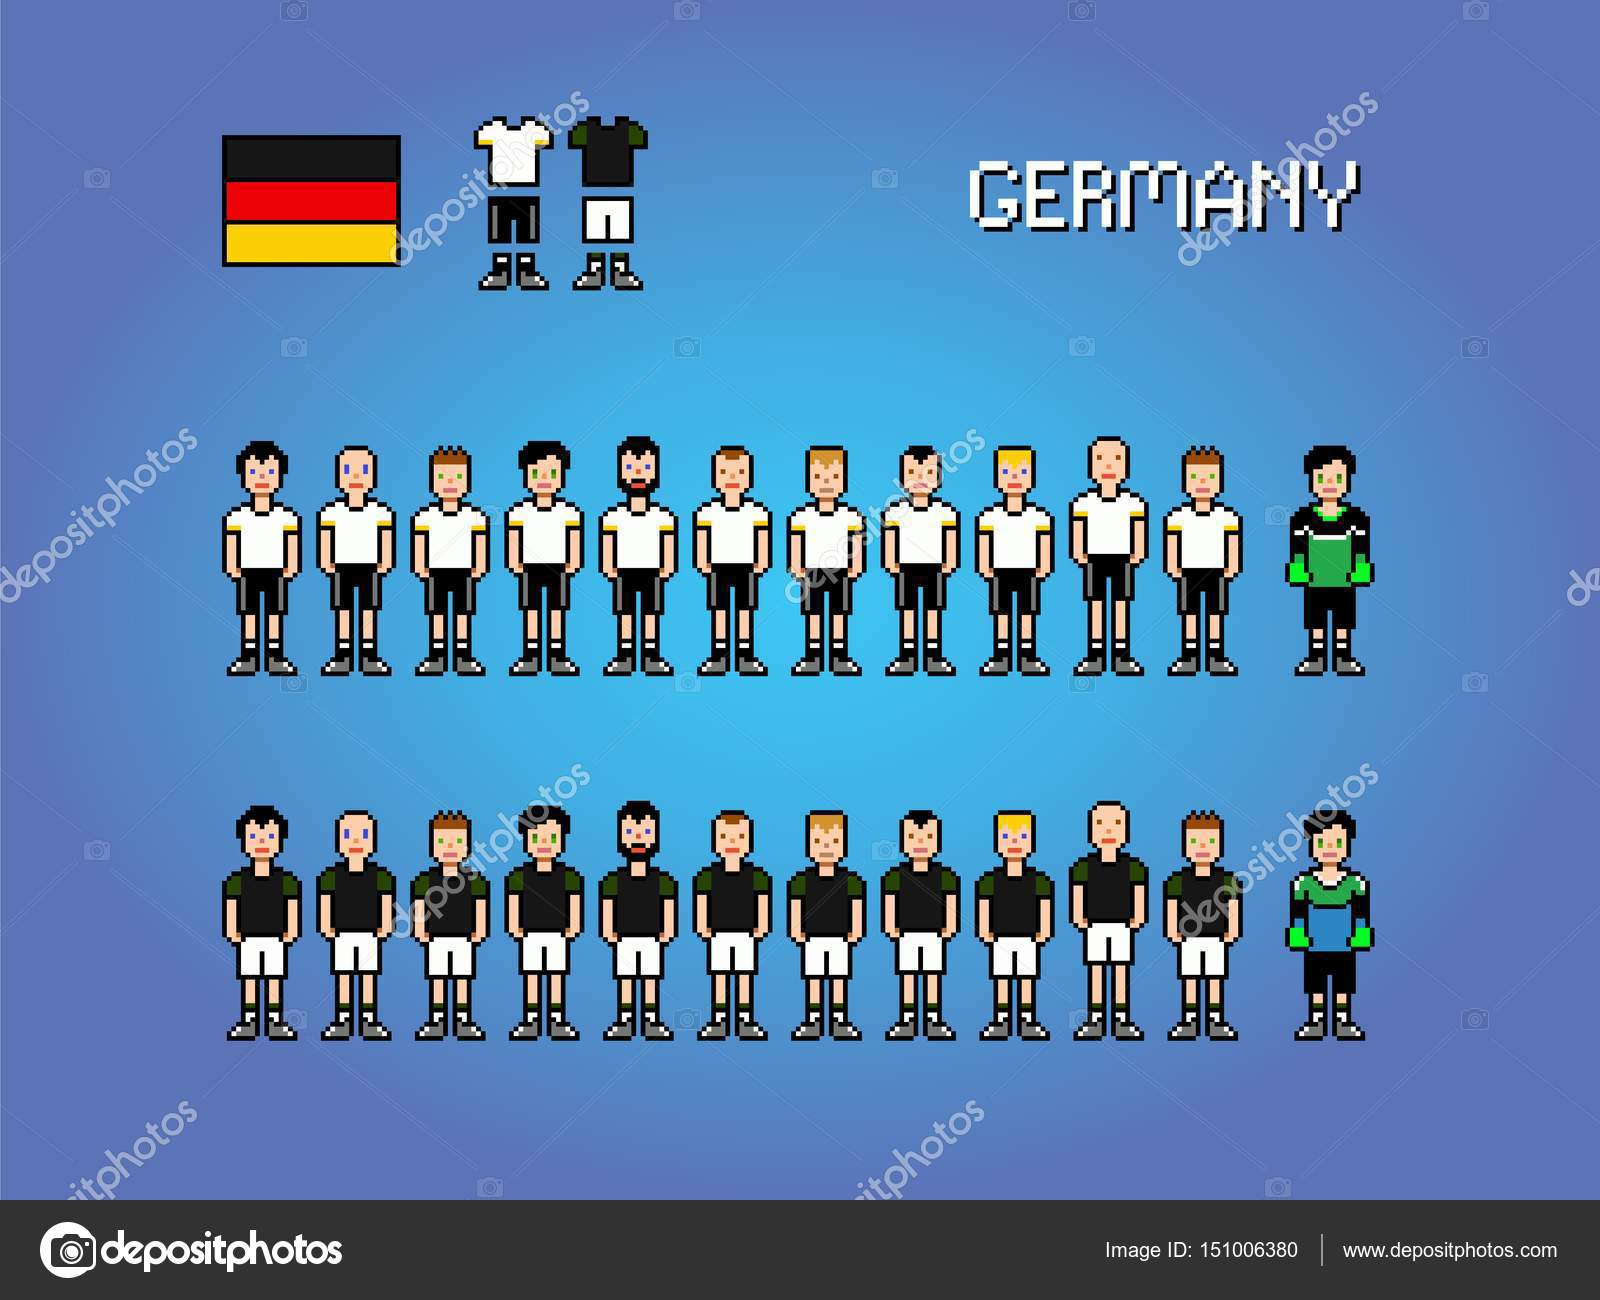 Germany Football Player Uniform Pixel Art Game Illustration